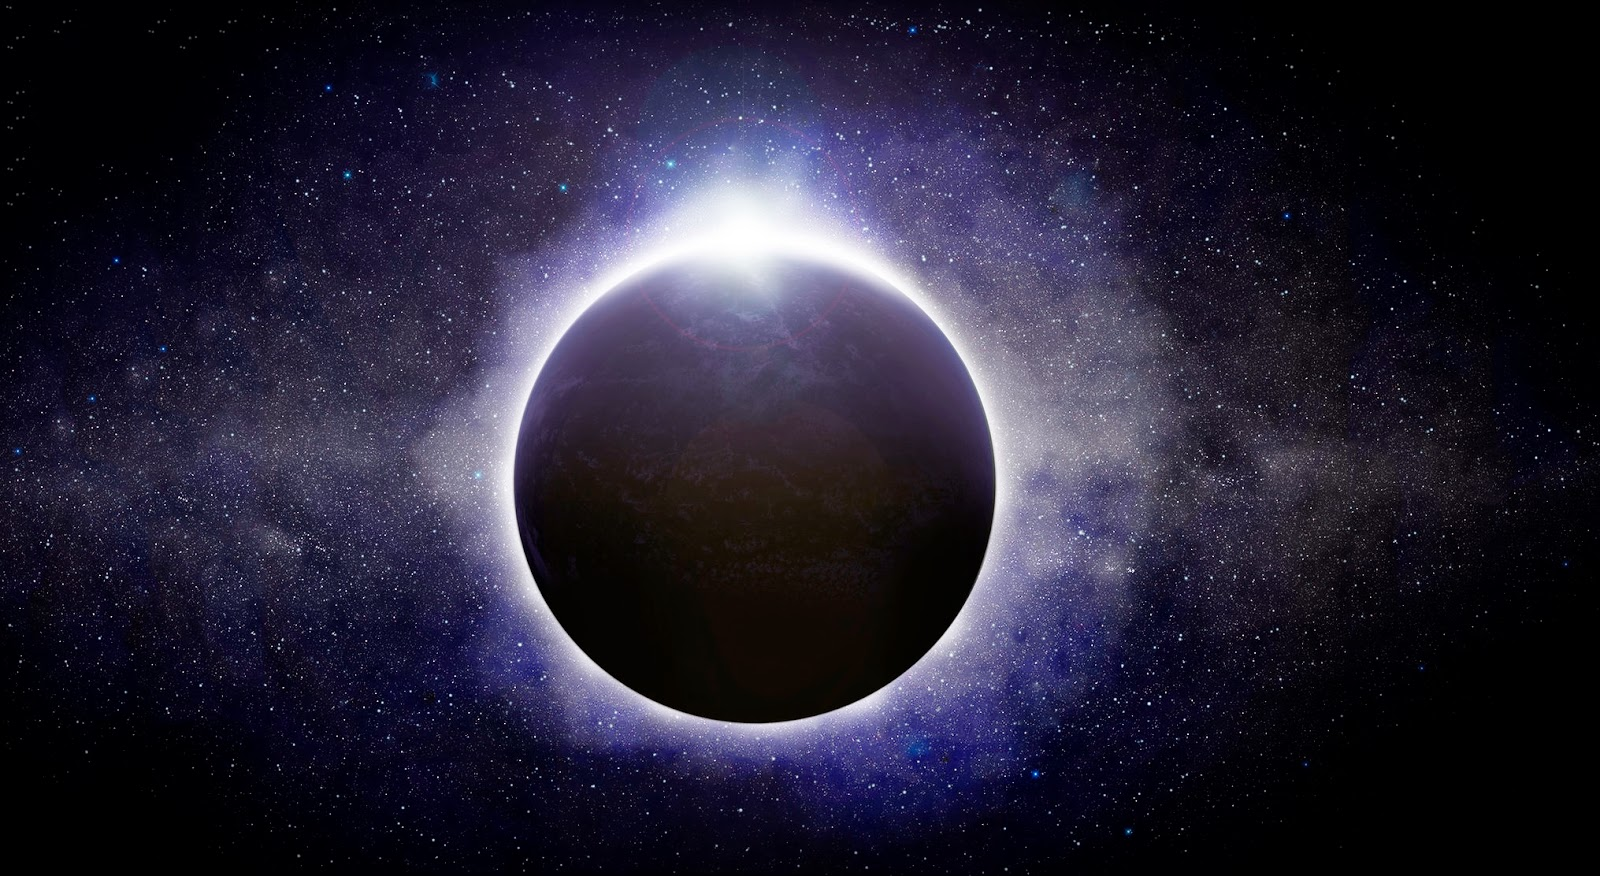 http://www.space.com/28820-total-solar-eclipse-march-2015.html